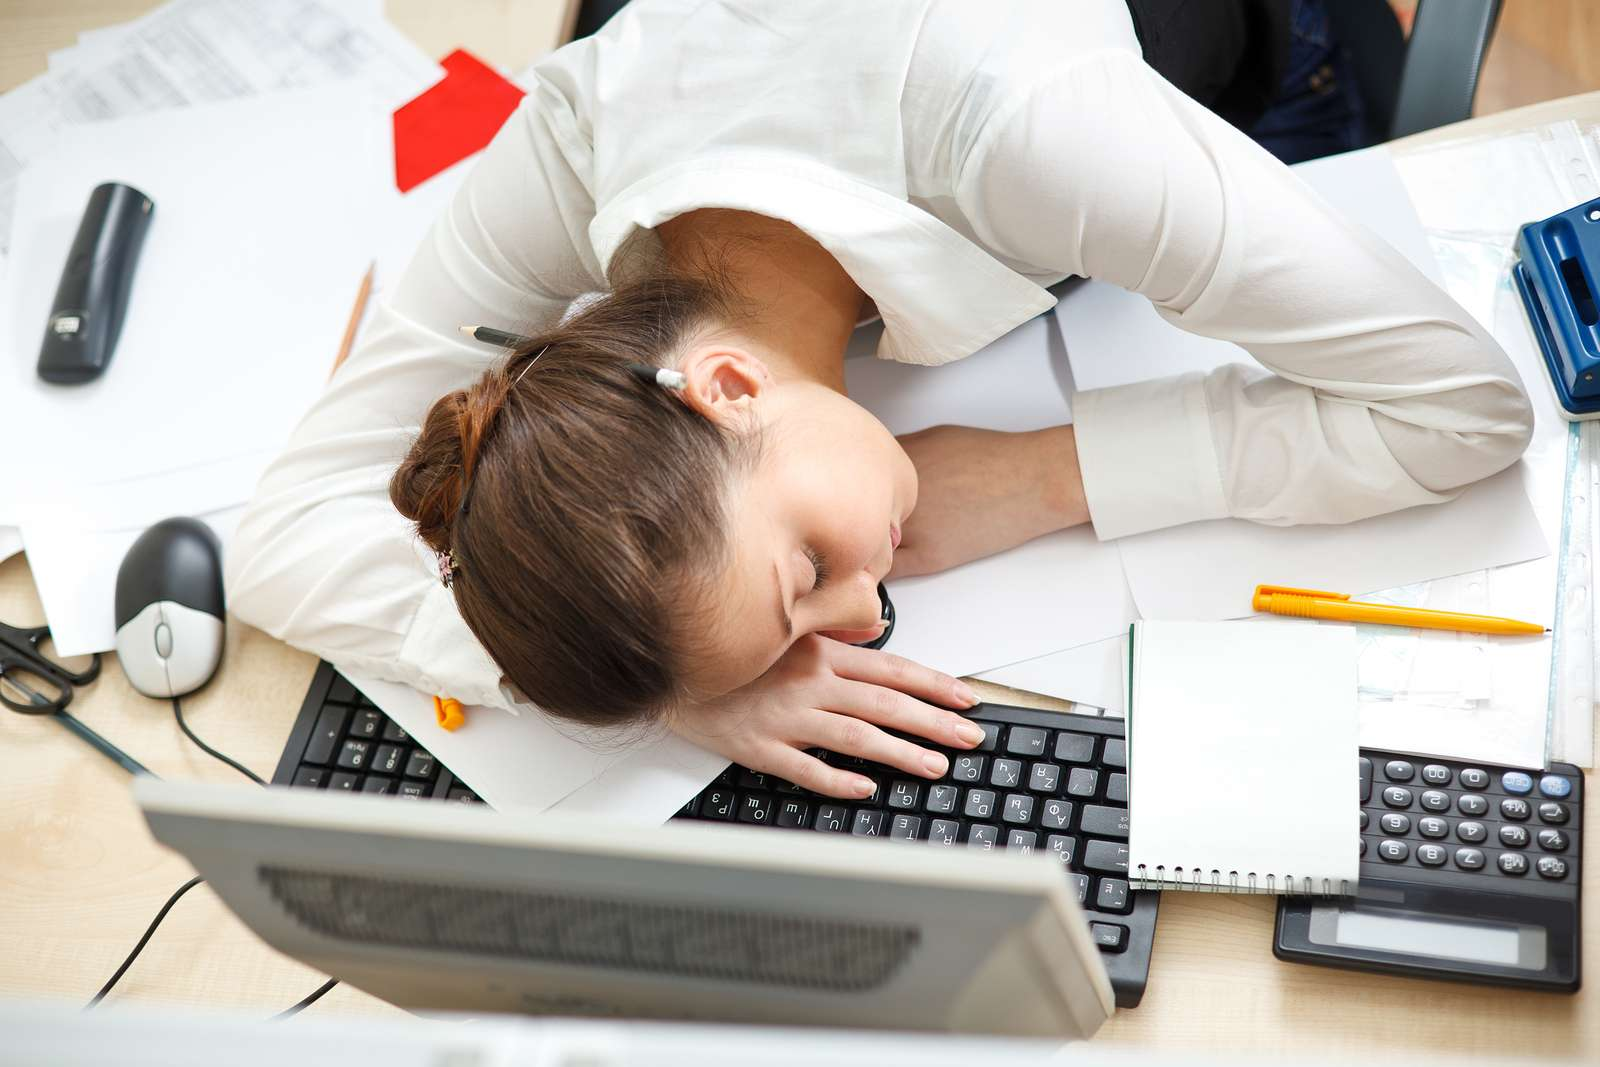 bigstock-office-life-young-woman-sleep-26595899